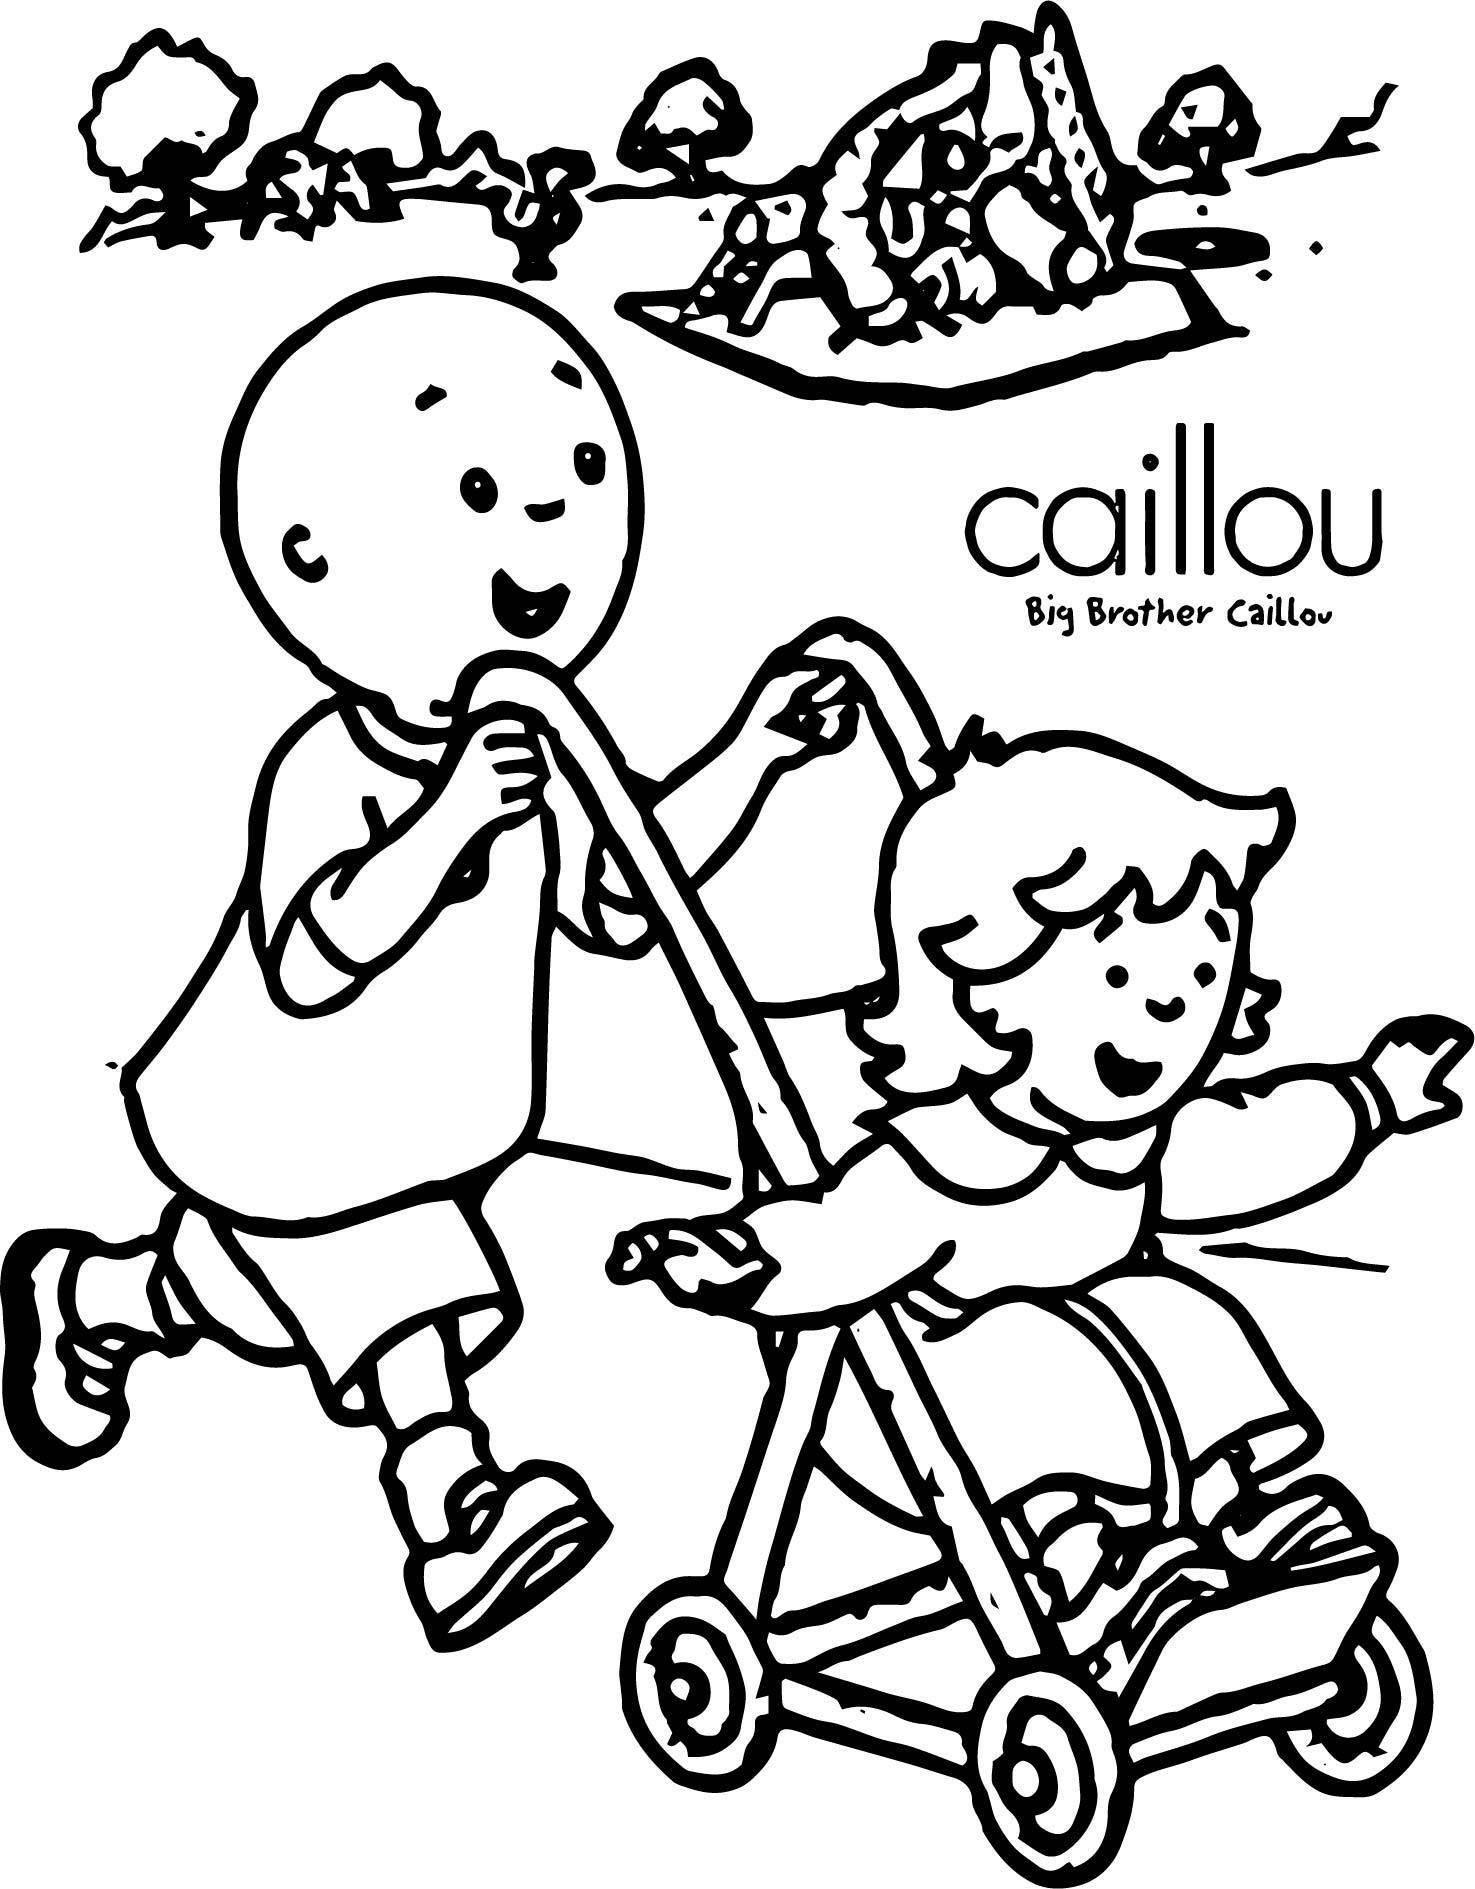 Caillou Big Brother Coloring Page